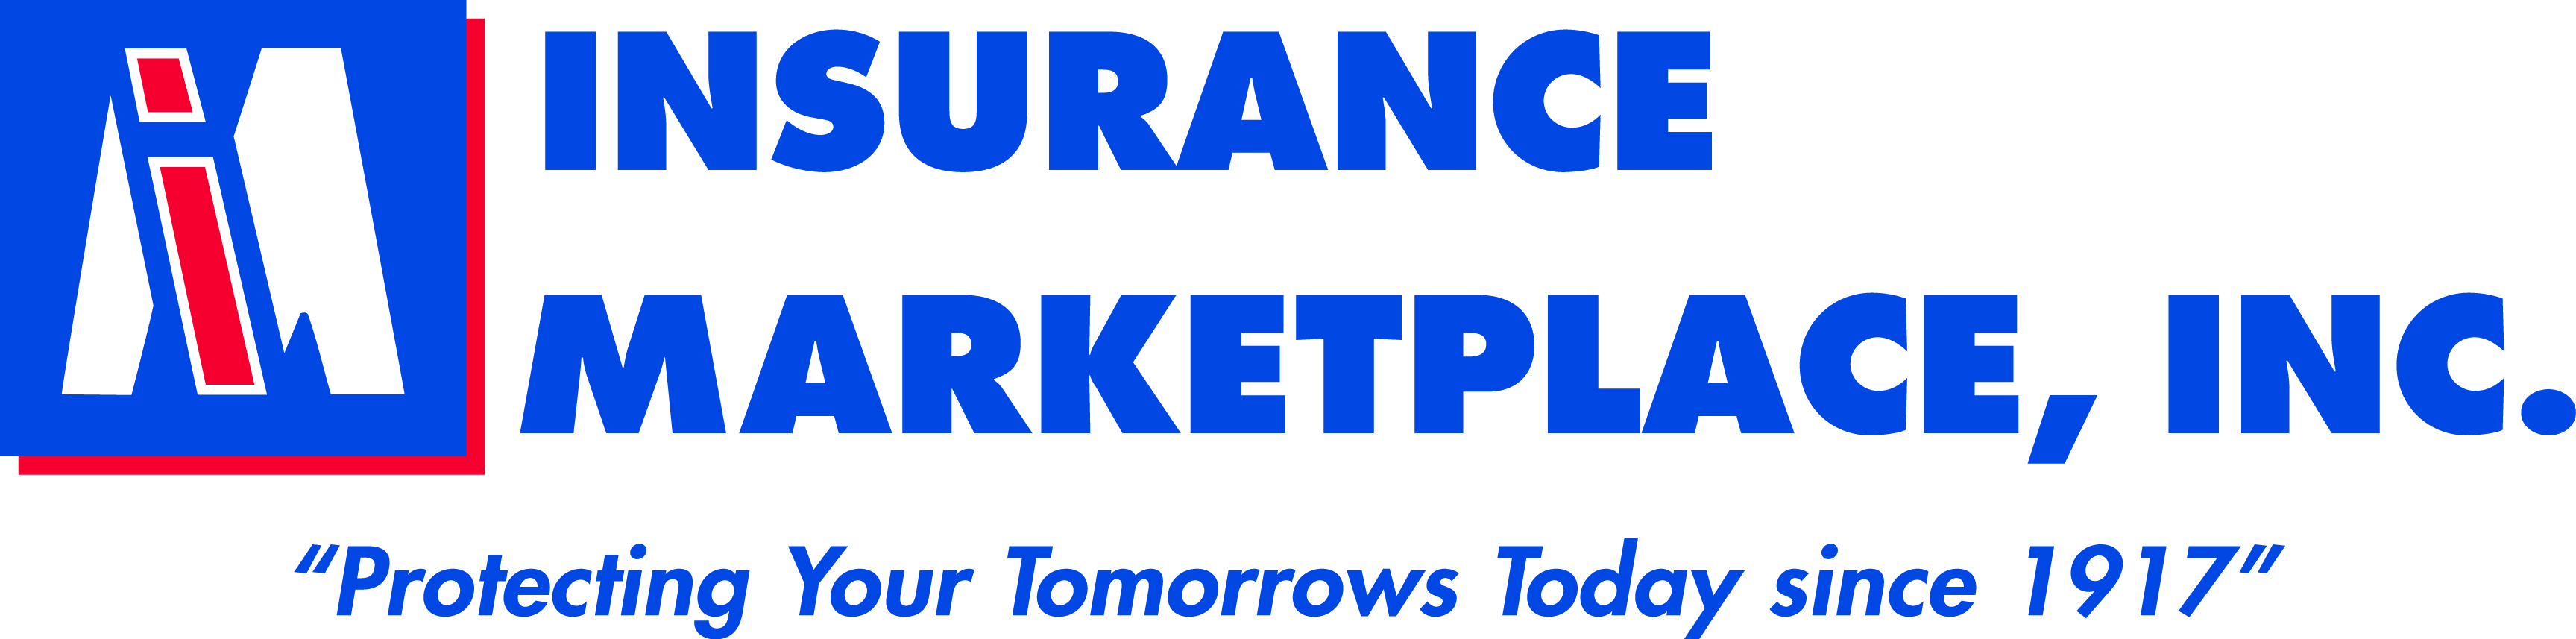 Insurance_marketplace_logo